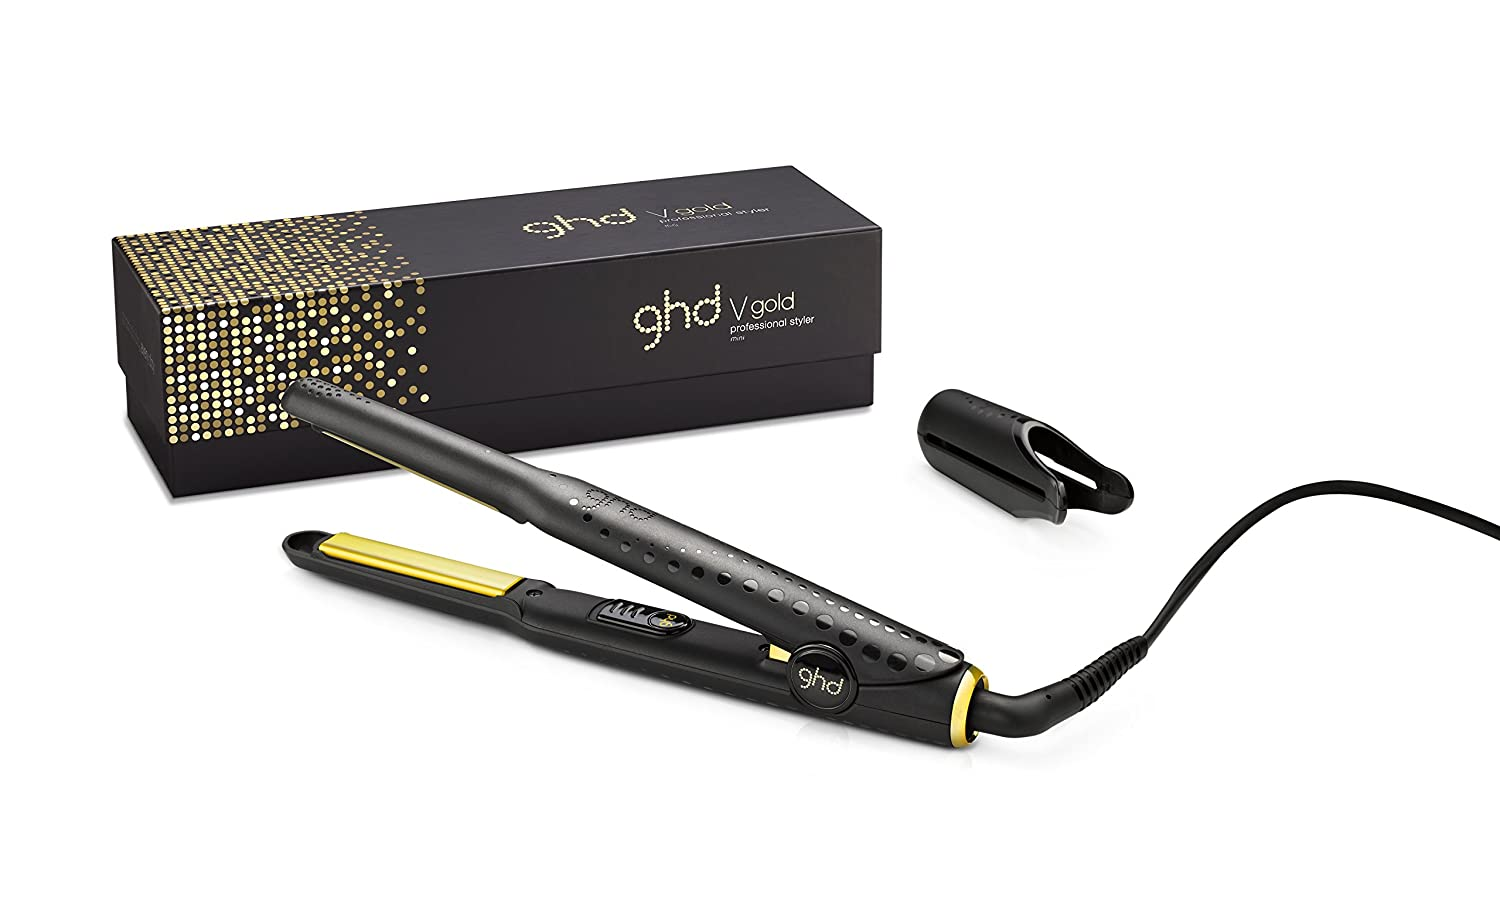 ghd Gold Mini Styler Plancha para el pelo color negro